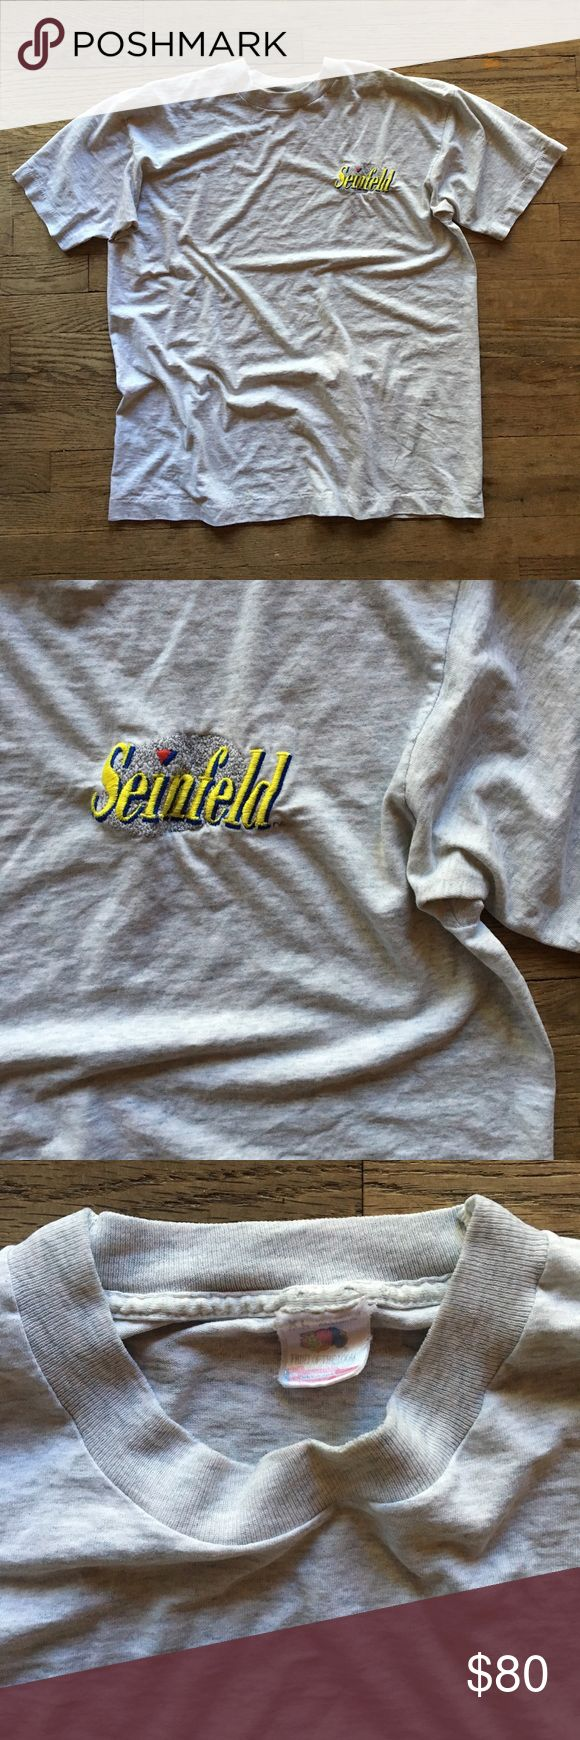 90s Vintage Extremely Thin Seinfeld Grey T-Shirt Vintage Fruit of the Loom Seinfeld shirt - Super thin & soft worn in fabric - 100% cotton - Made in USA - In Rad authentic vintage condition - Shoulder to shoulder: 21 in // Length: 28 in Fruit of the Loom Tops Tees - Short Sleeve